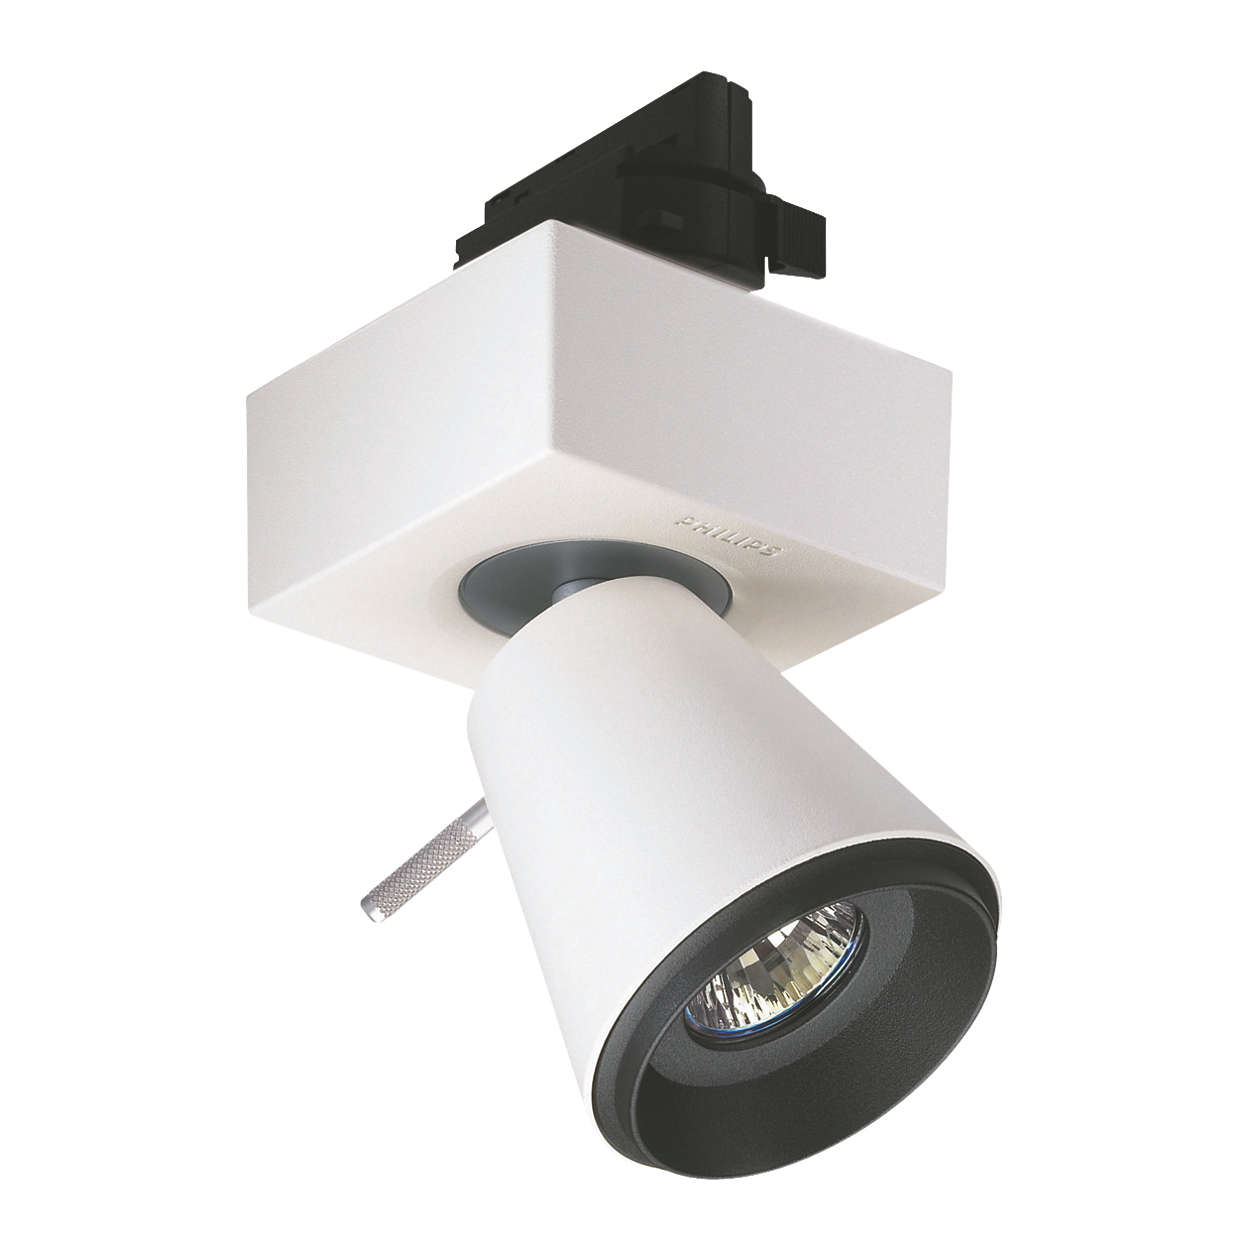 UnicOne Projector – Powerful effects